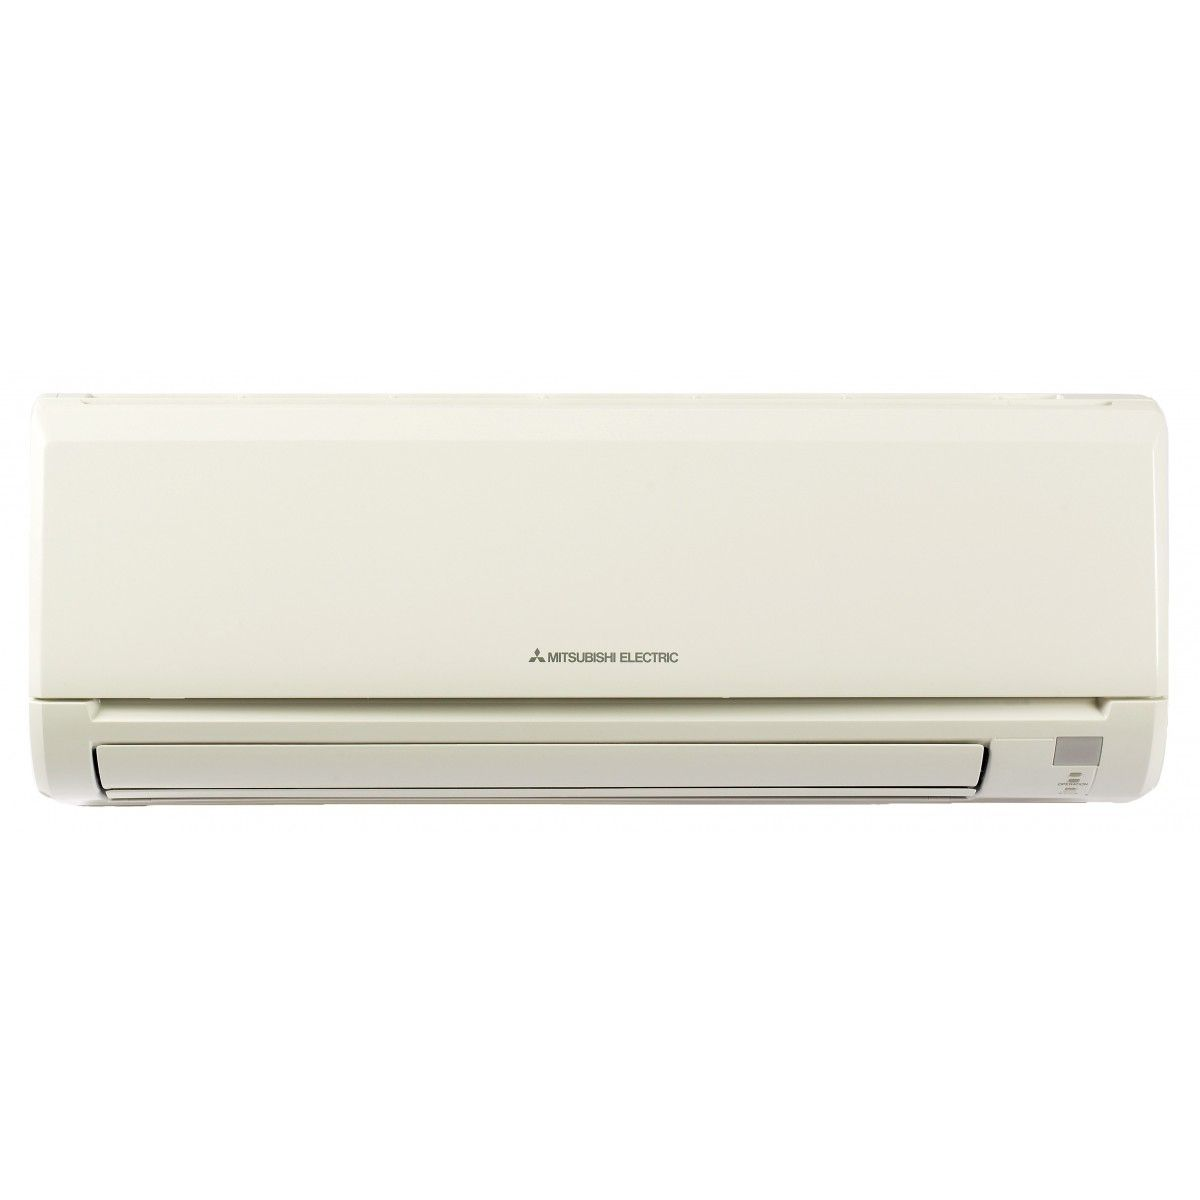 Mitsubishi Wall Mounted Air Conditioner Units on Mitsubishi Ac  #787853